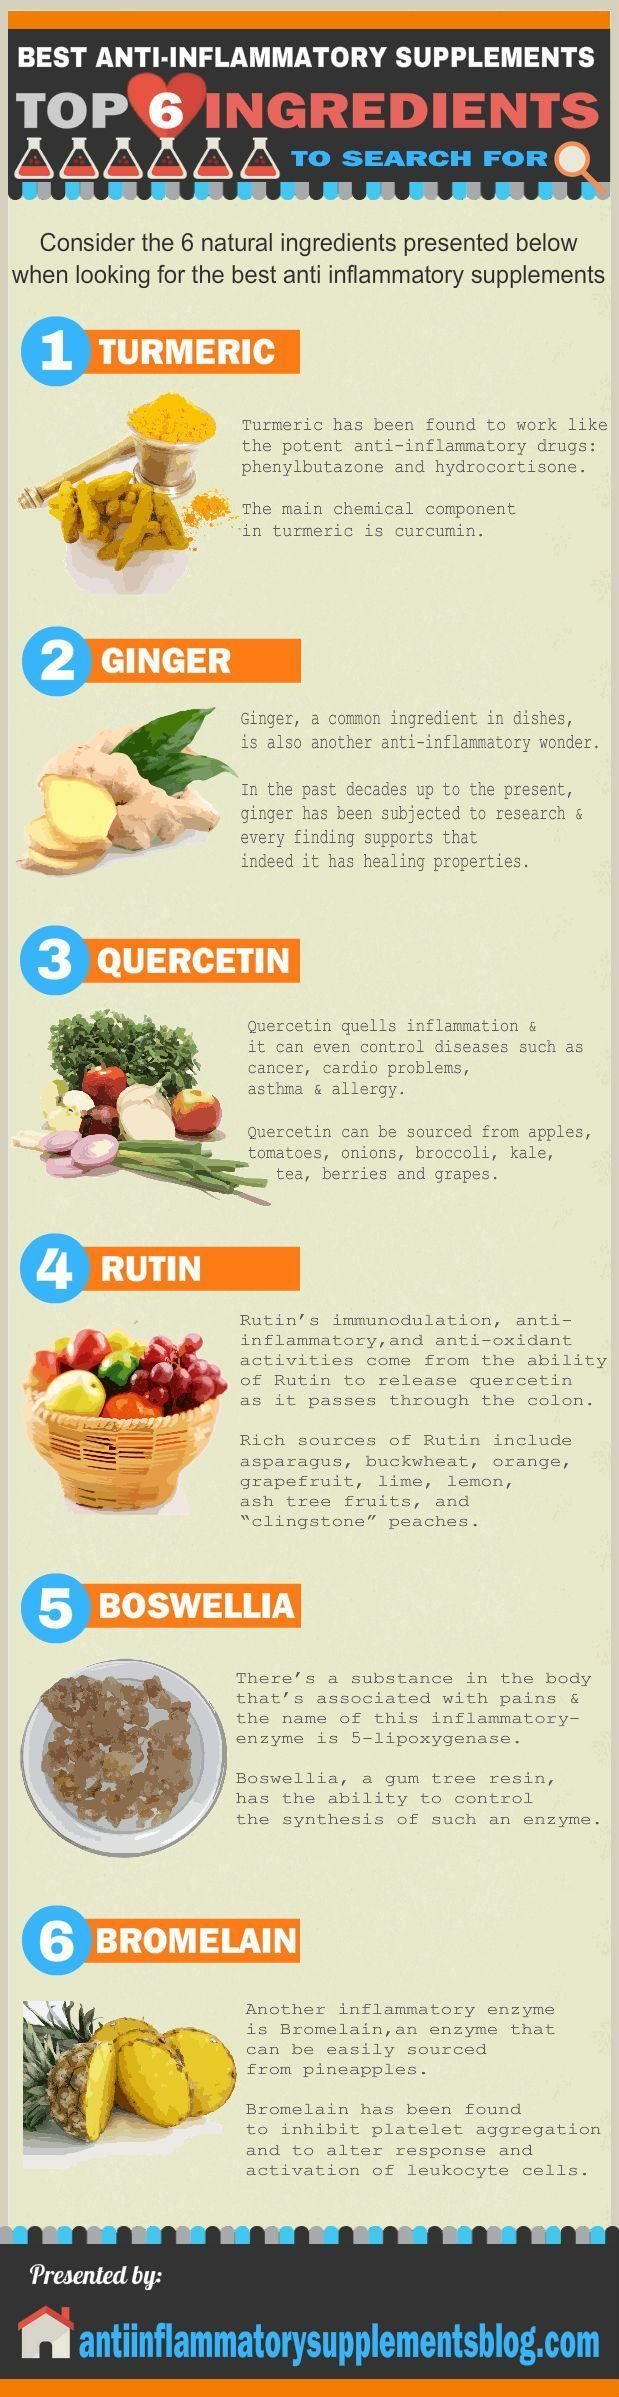 "Best anti inflammatory supplements Top 6 Ingredients to Search for Infographic ""Consider the 6 natural ingredients presented below when looking for the best anti inflammatory supplements: turmeric, ginger, quercetin, rutin, boswellia, bromelain"